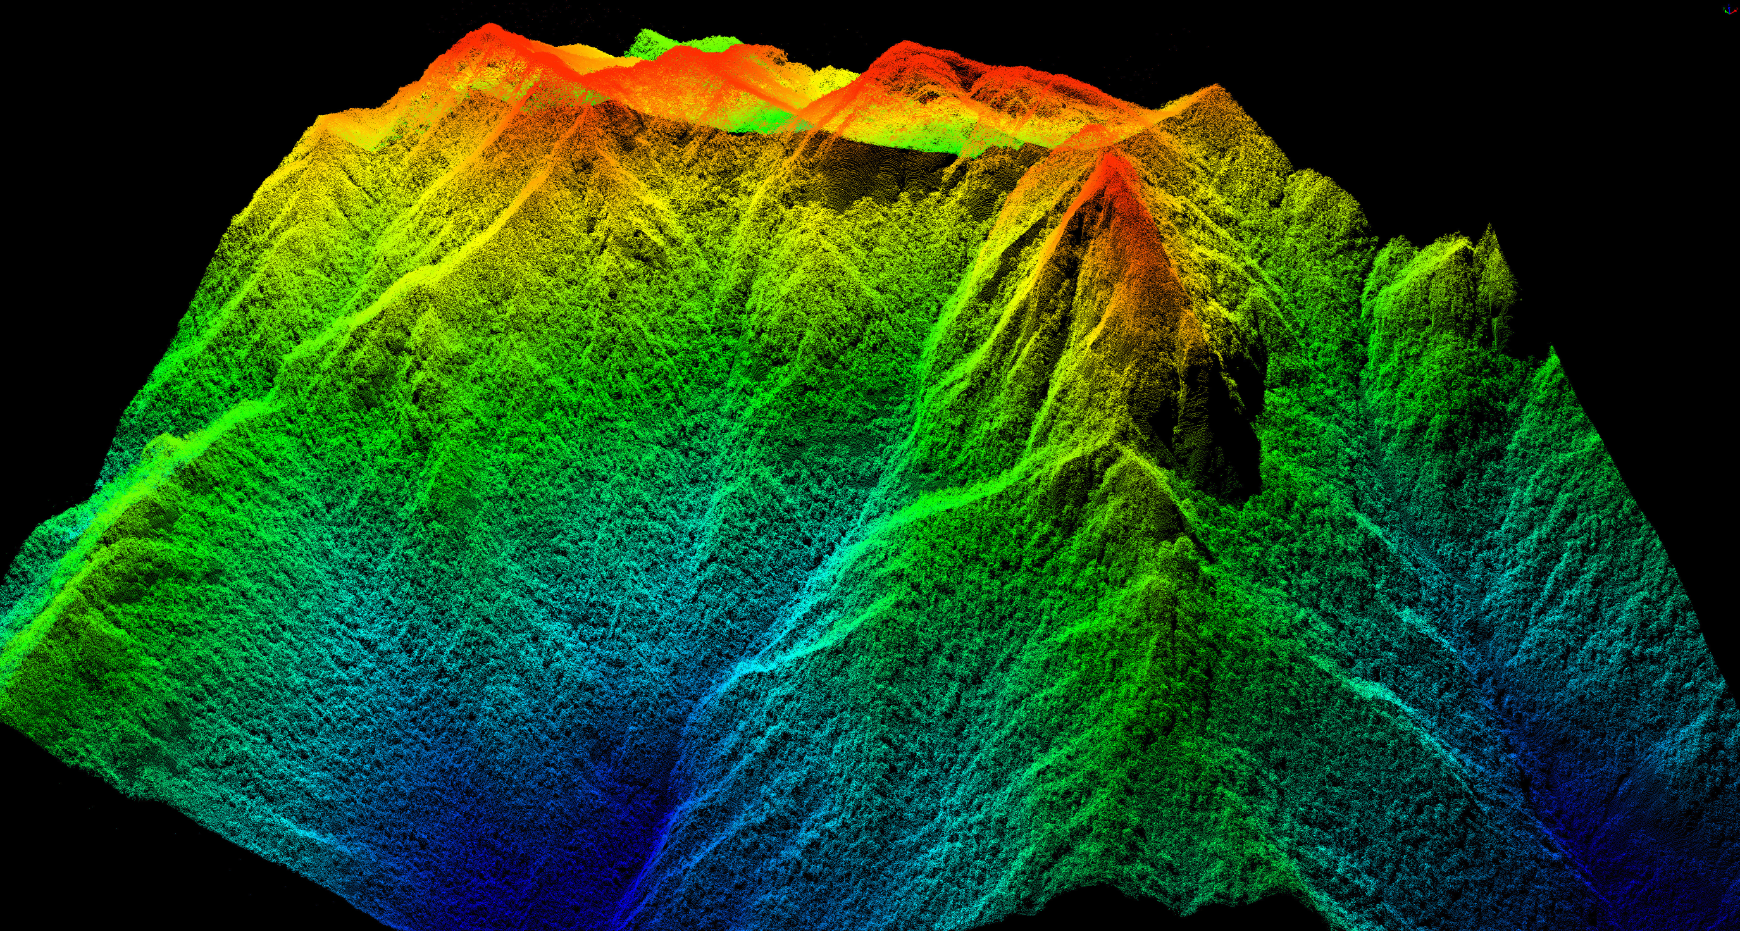 Lidar and hyperspectral remote sensing data fusion realize complementary advantages